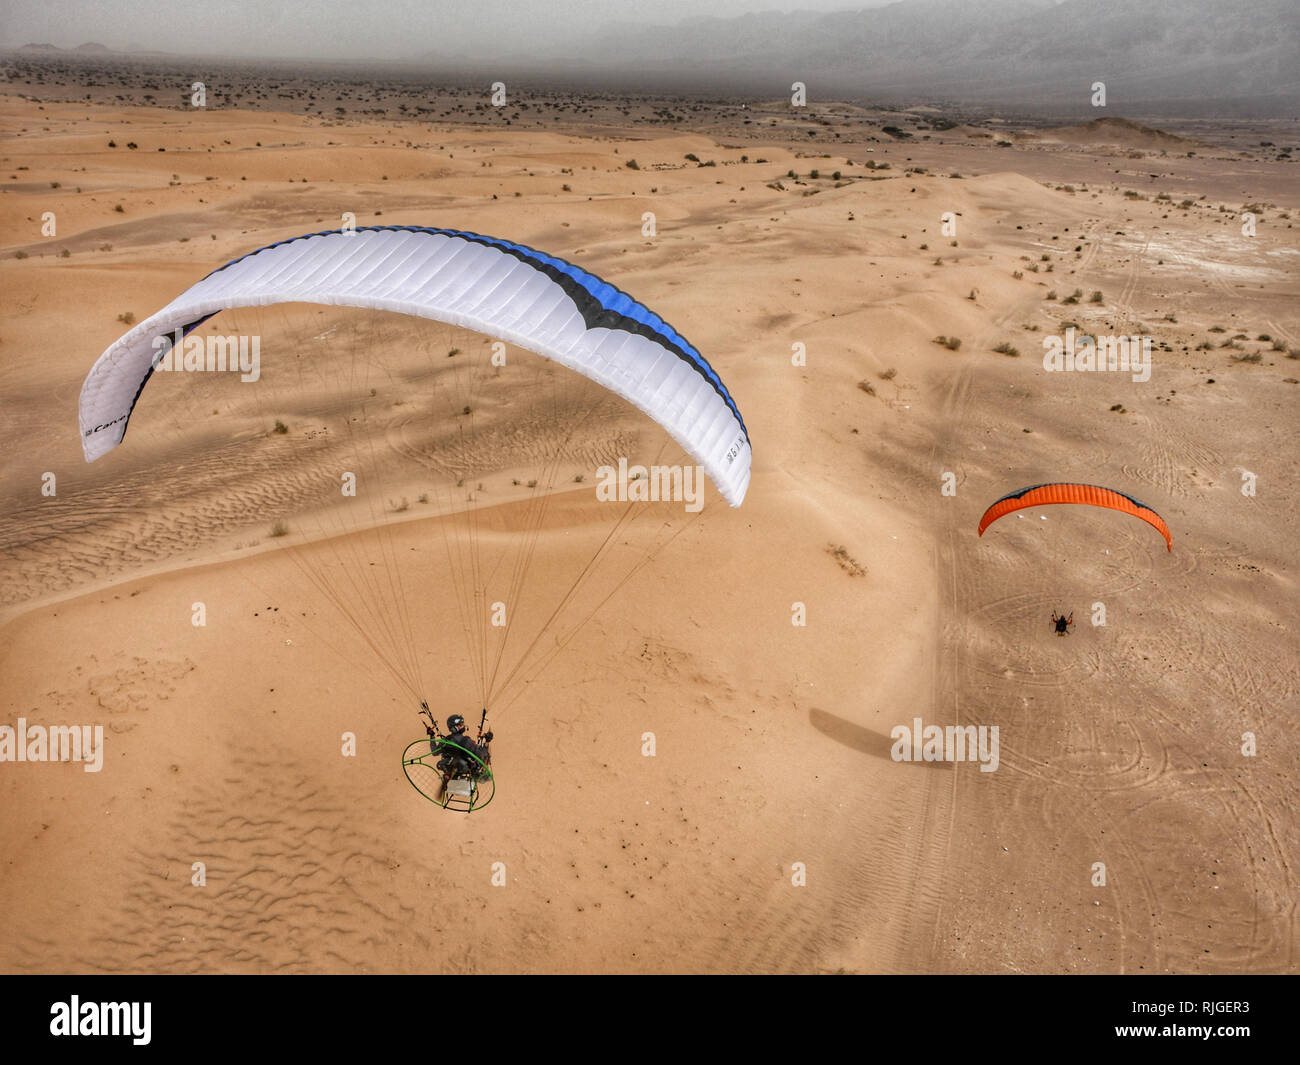 Fresh Breeze Paramotor Stock Photos & Fresh Breeze Paramotor Stock